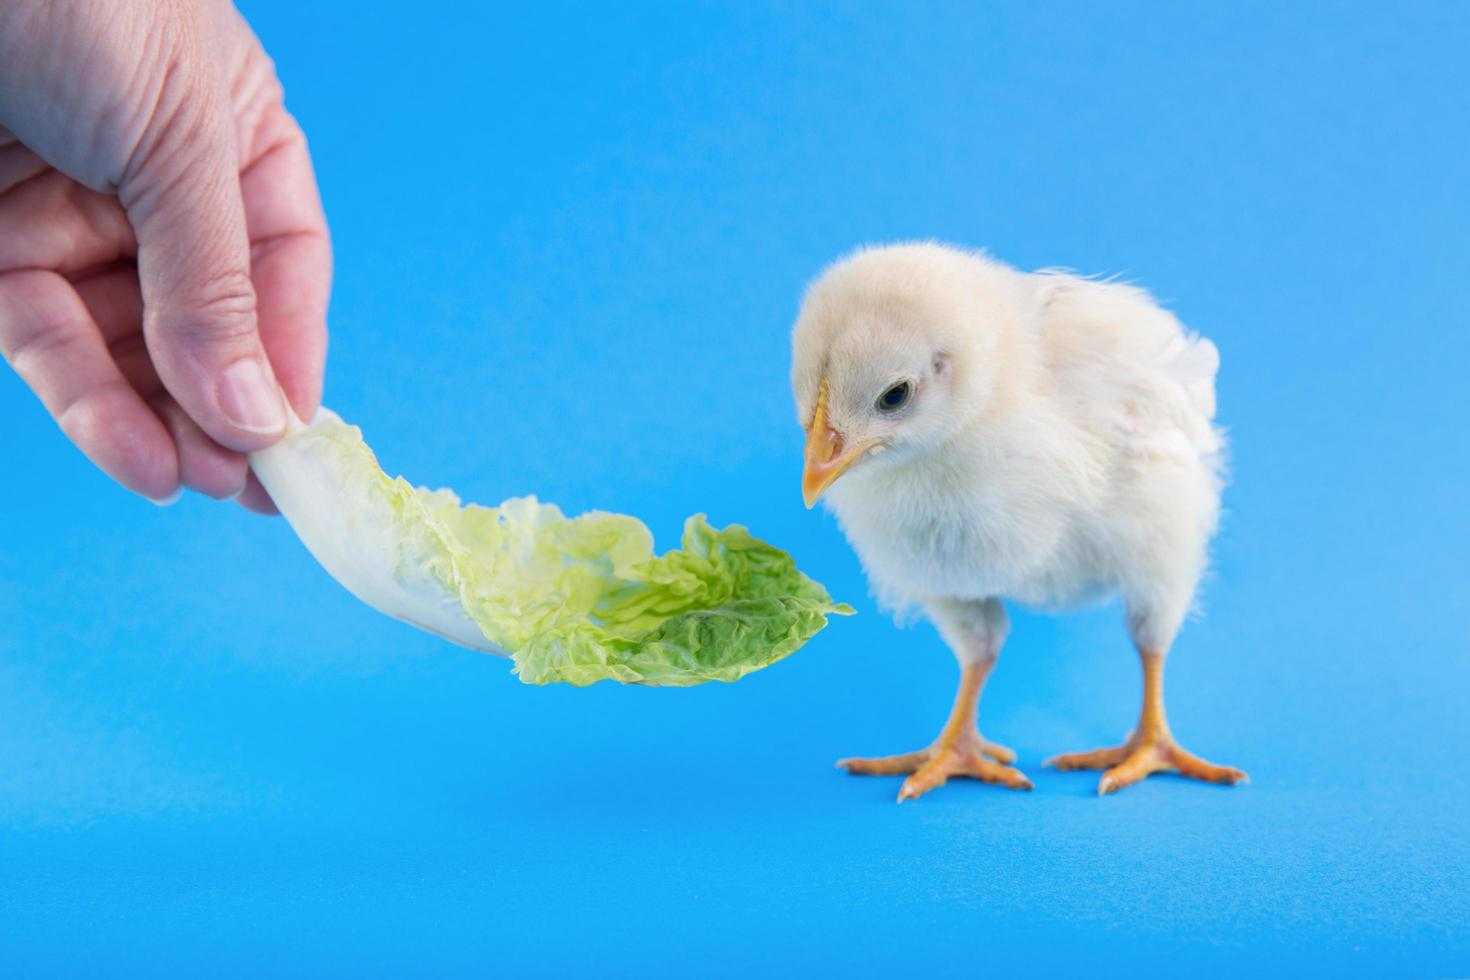 Small chick and lettuce on studio background photo